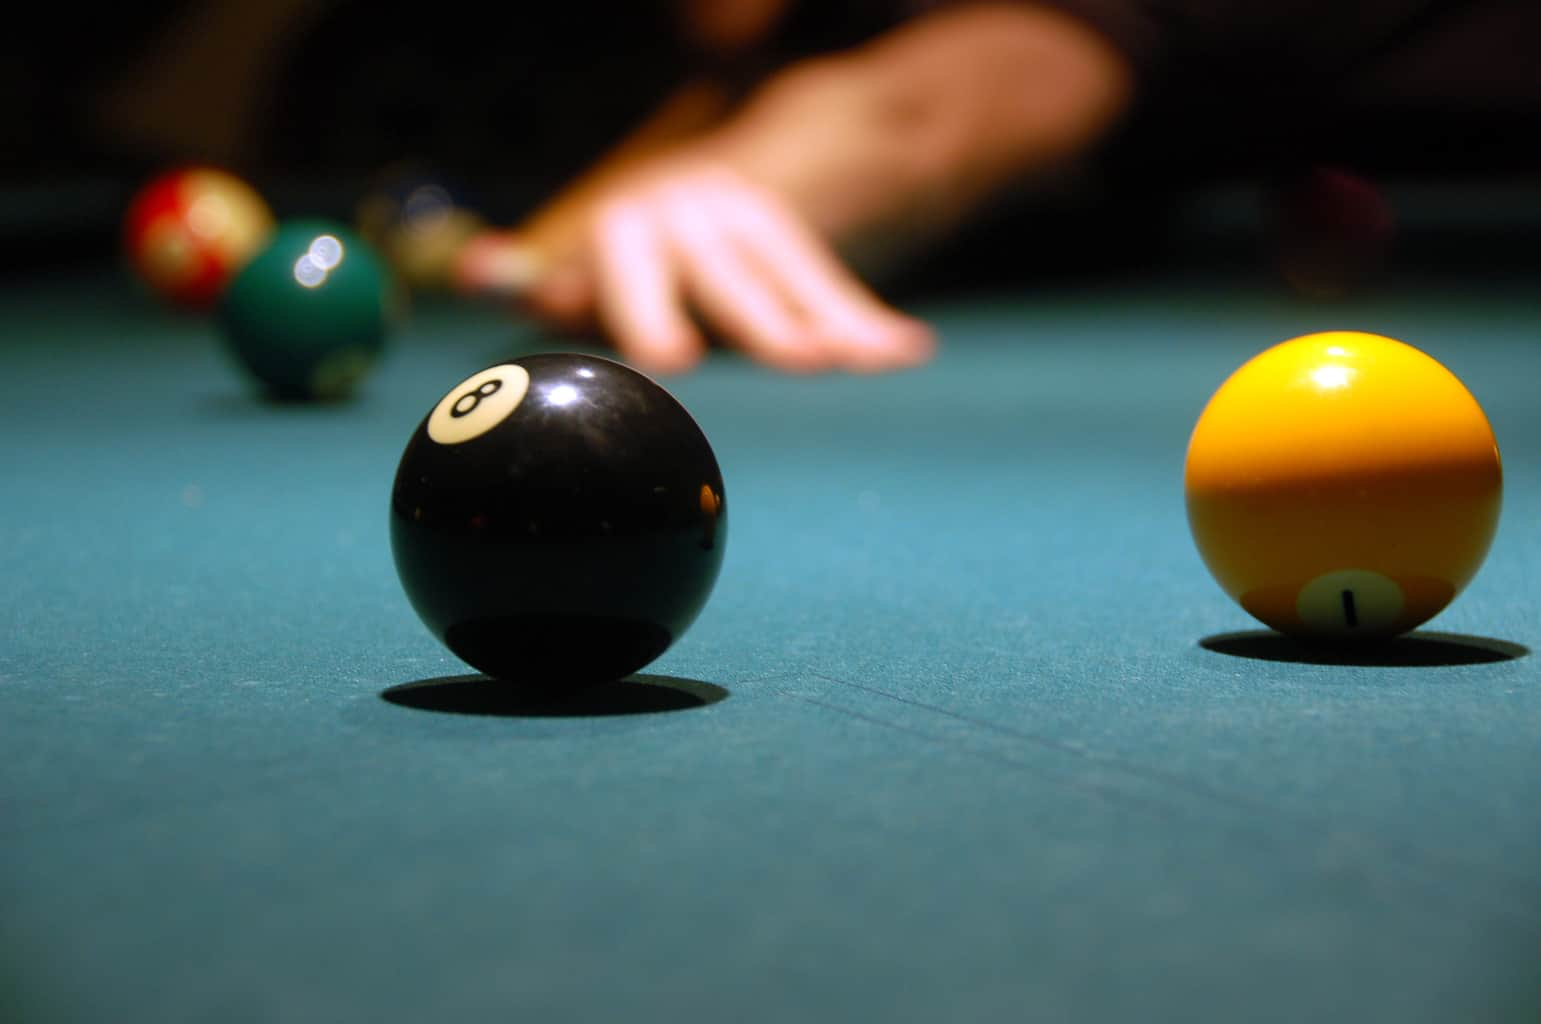 play billiards (pool)